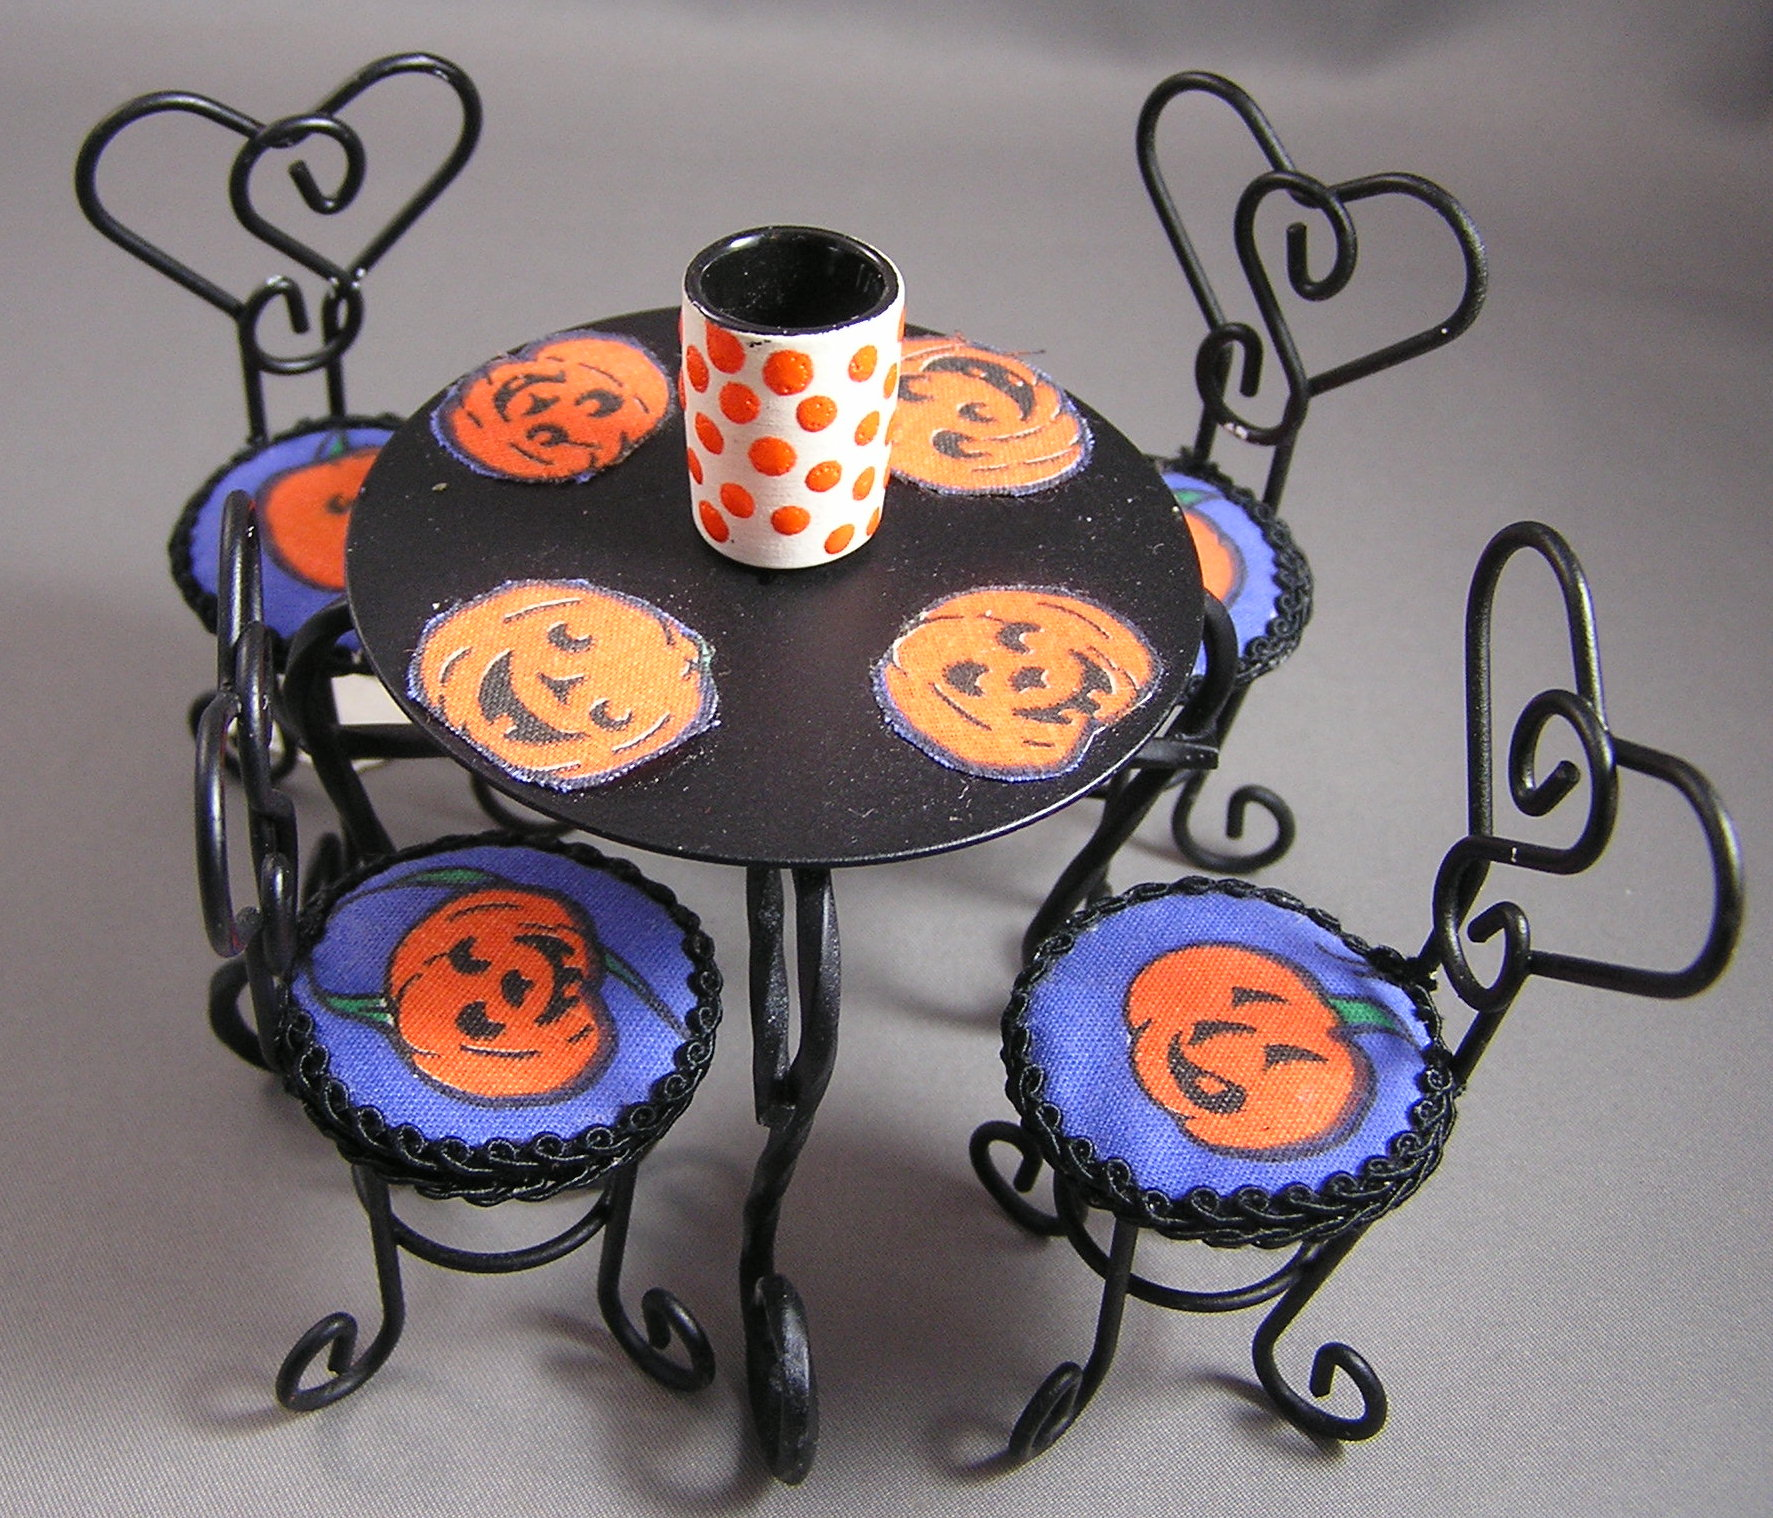 Ice Cream Table Set for Halloween